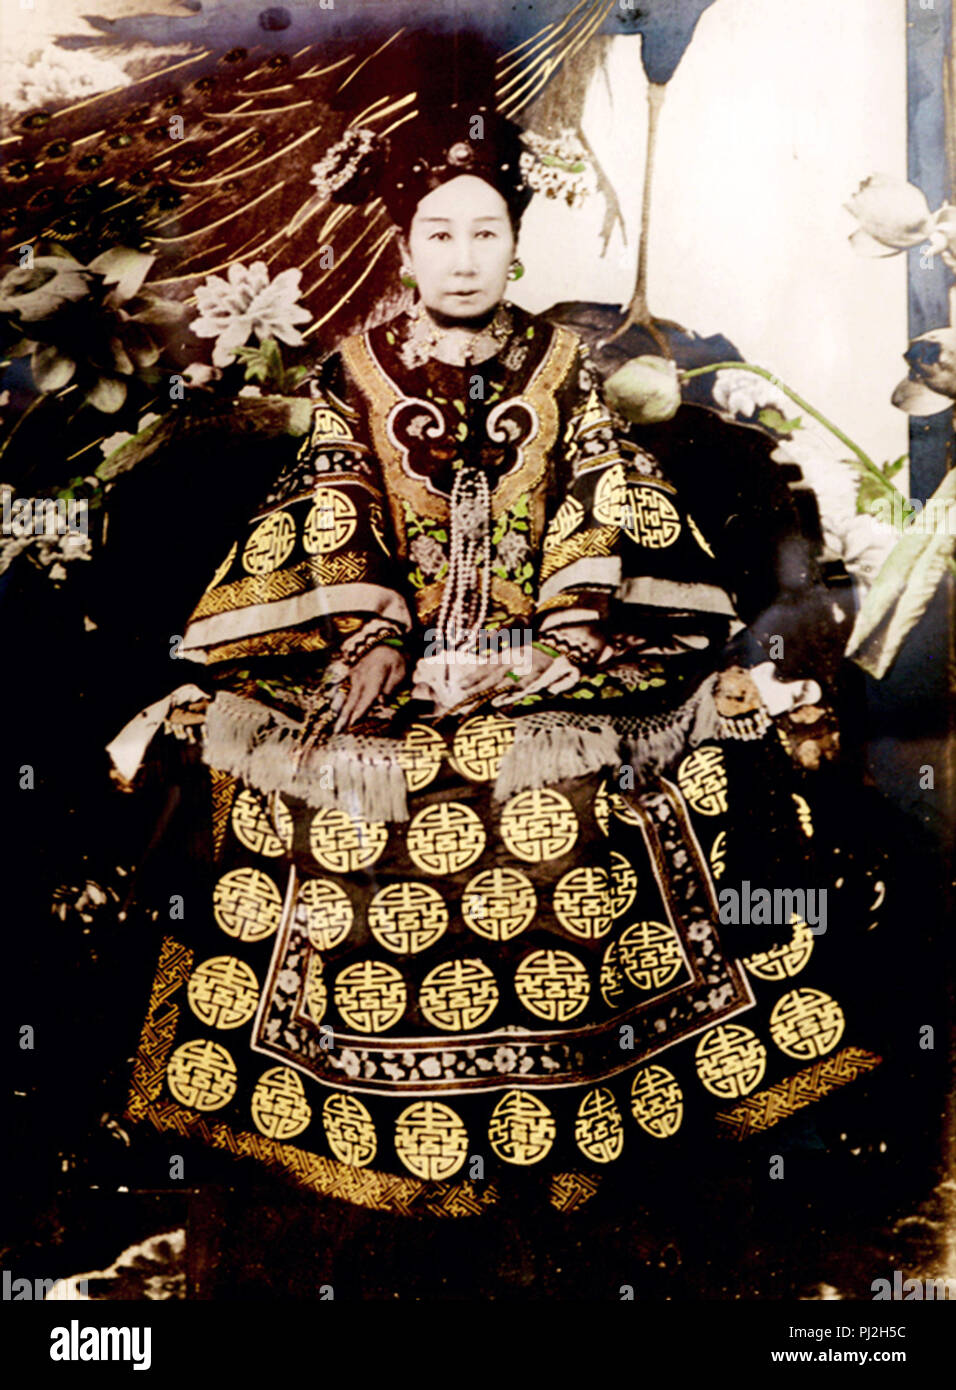 Empress Dowager Cixi (1835 – 1908), Manchu Yehenara clan, Chinese empress dowager and regent who effectively controlled the Chinese government in the late Qing dynasty for 47 years from 1861 until her death in 1908. - Stock Image